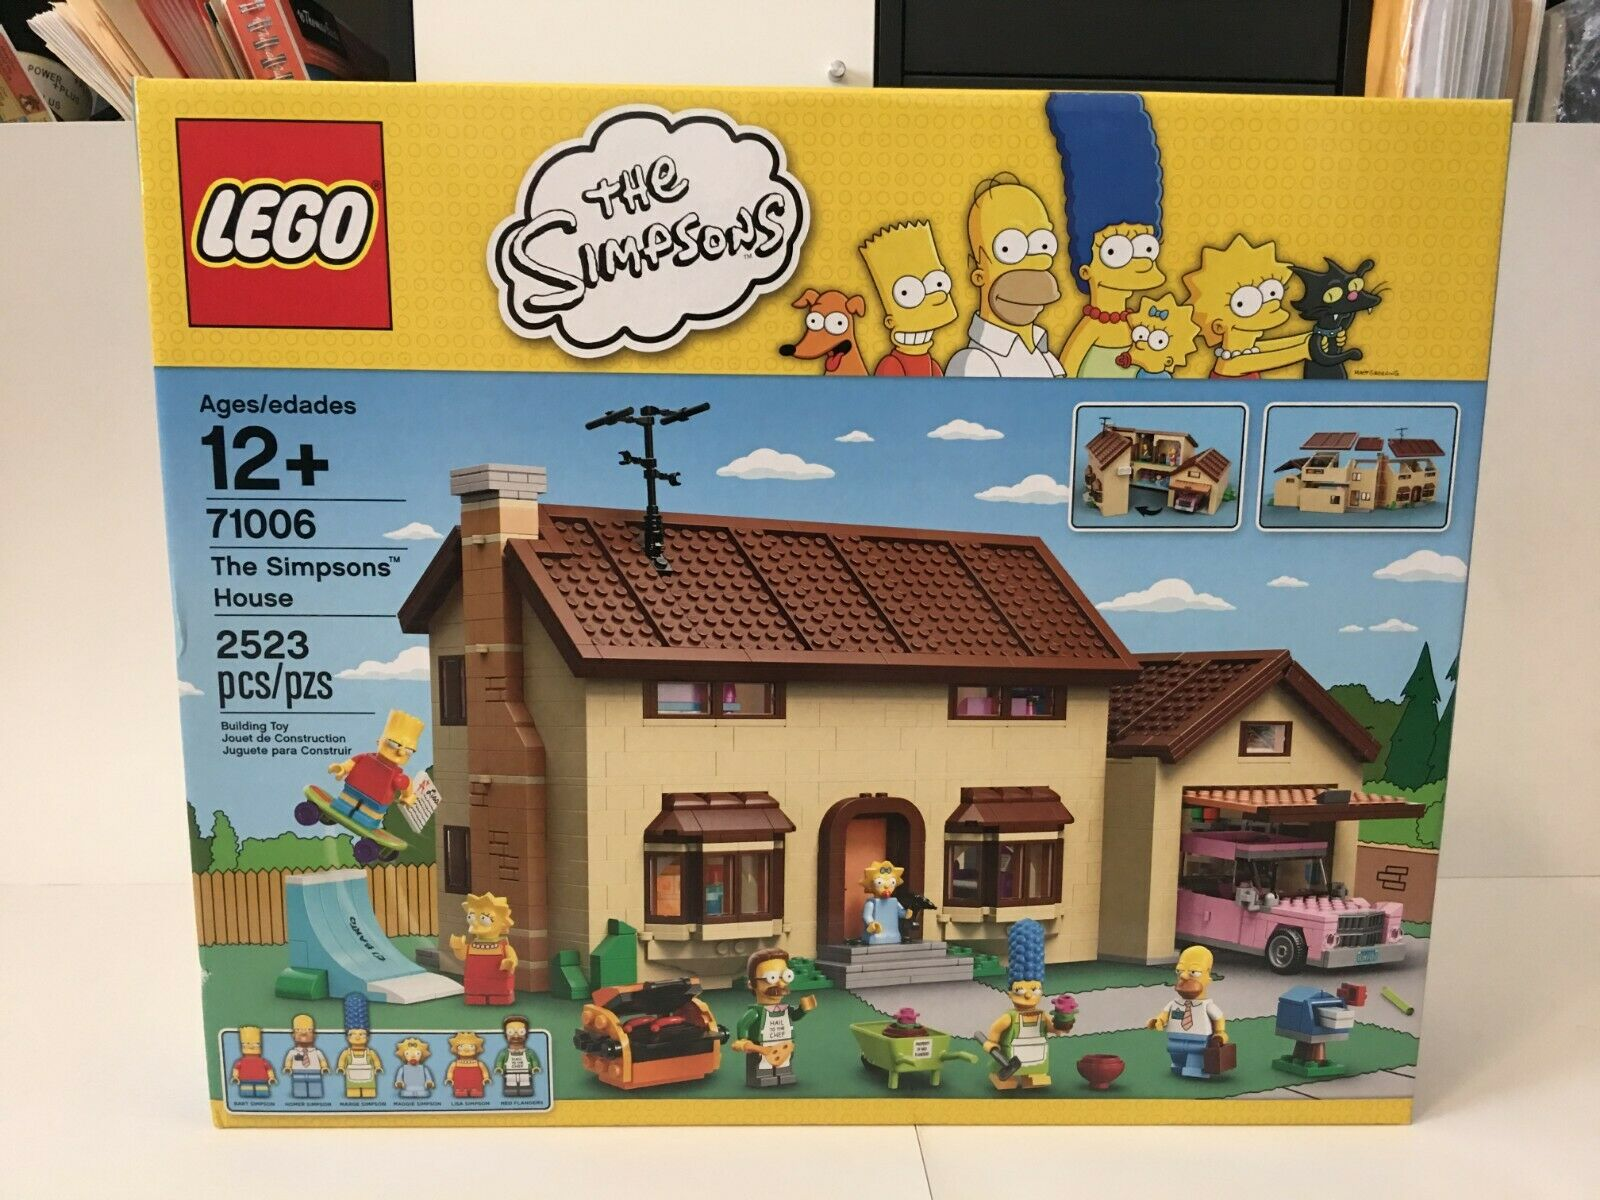 nuovo  LEGO The Simpsons 71006 The Simpsons House Factory Sealed Retirosso   consegna rapida